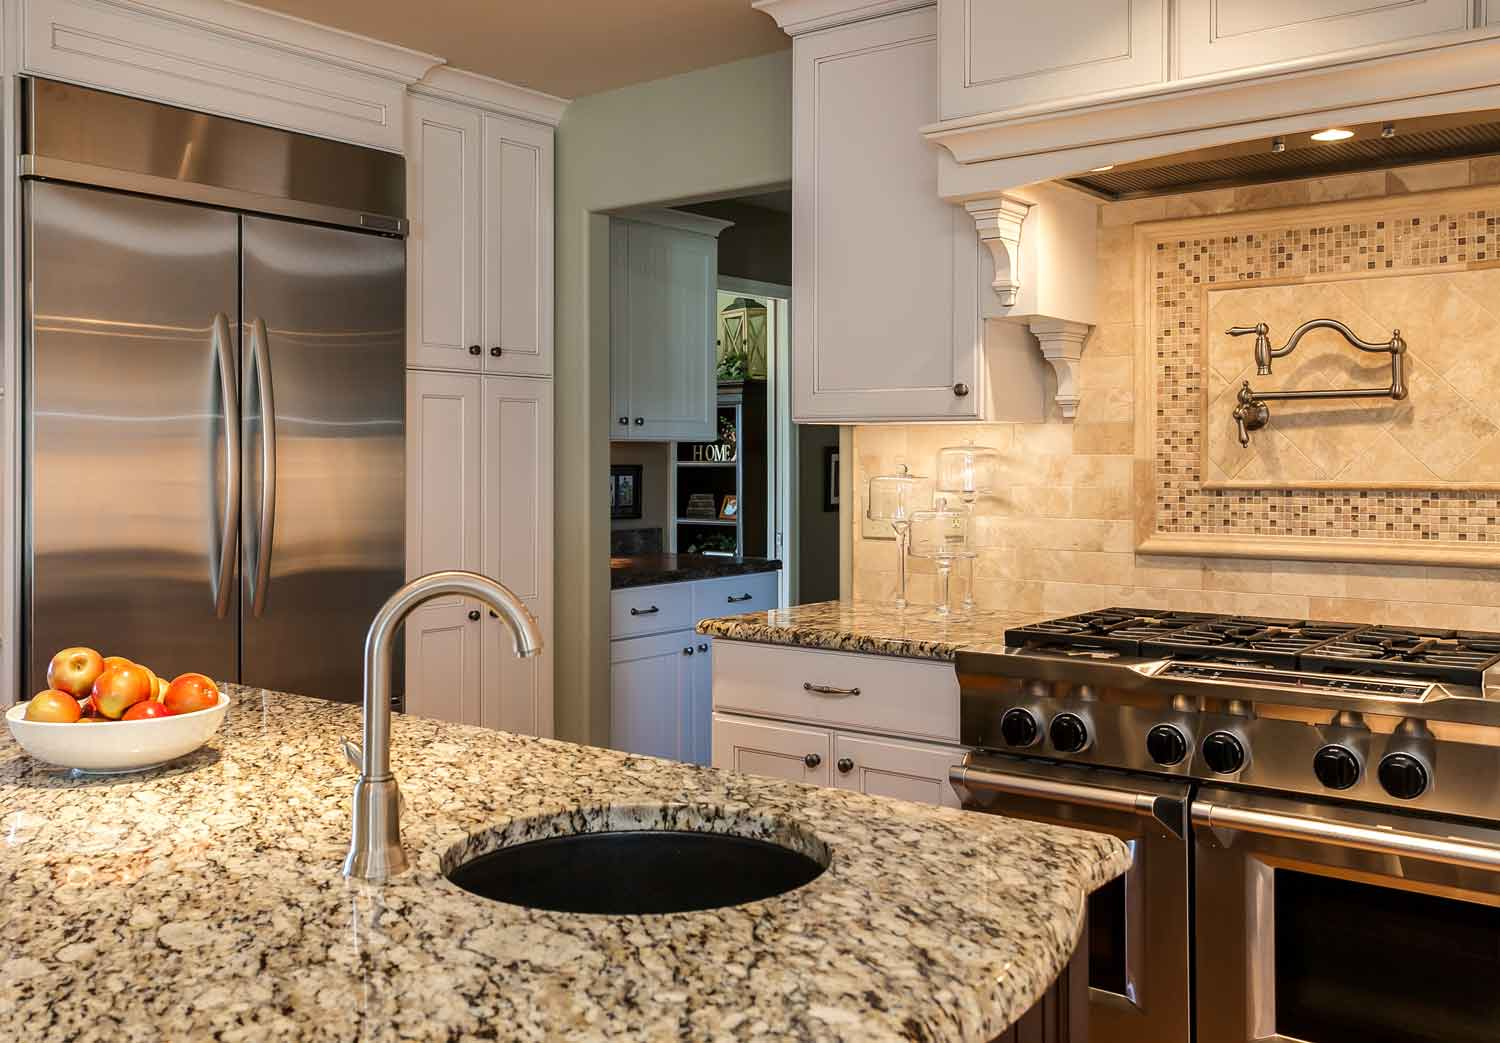 Kitchen Remodeling Denver Co Denver Home Renovation Turns Small Rooms To Inviting Kitchen